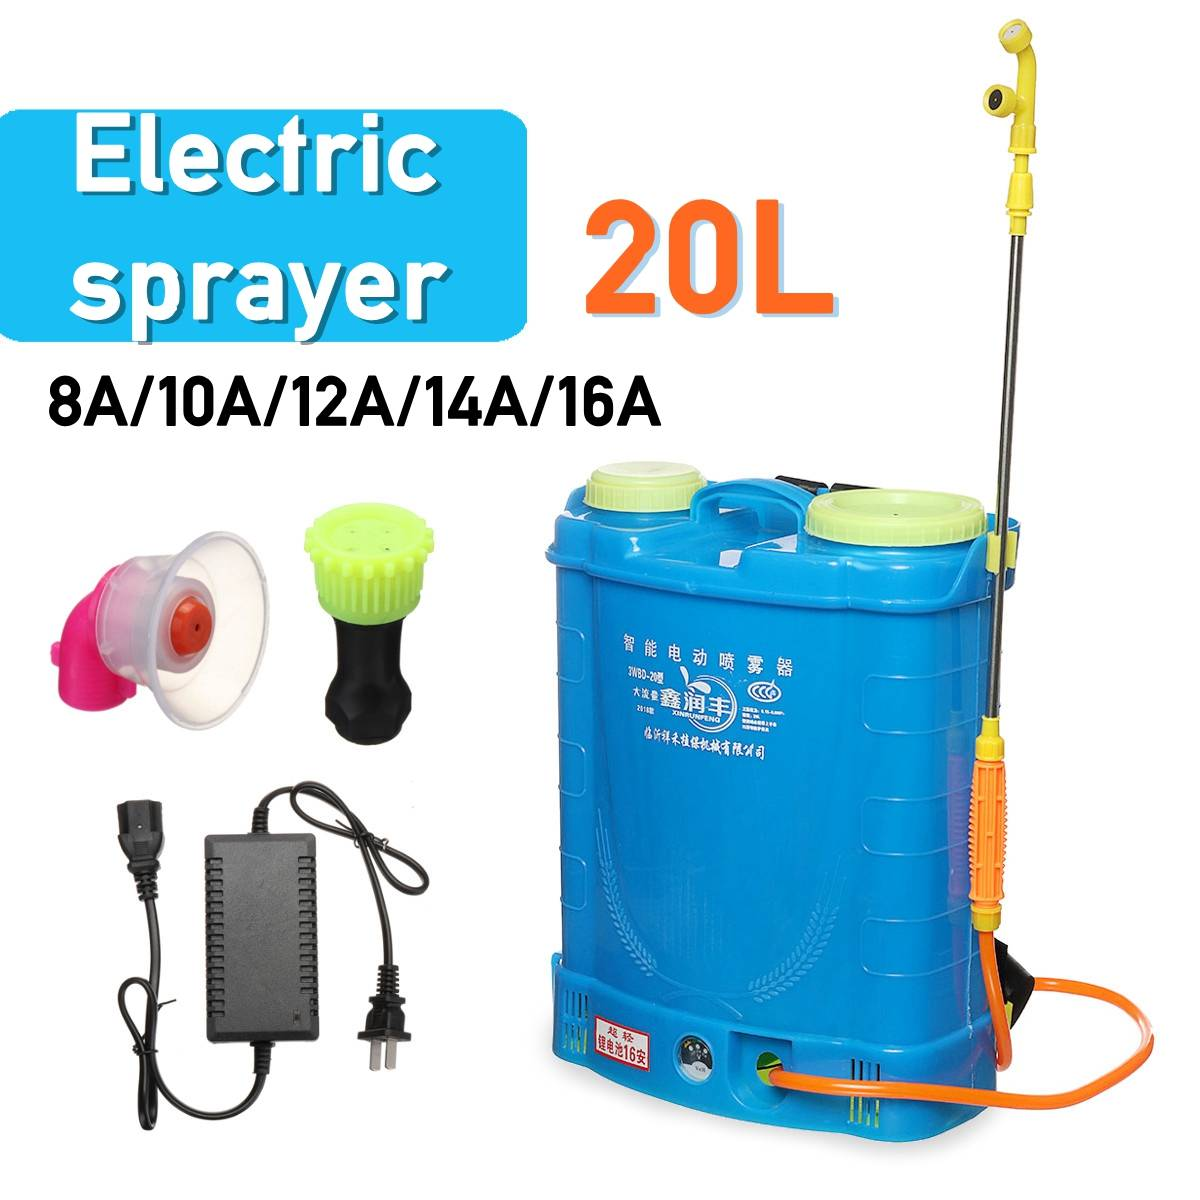 Electric-Sprayer Garden-Equipment Agricultural Pesticide High-Pressure Charge-Dispenser title=